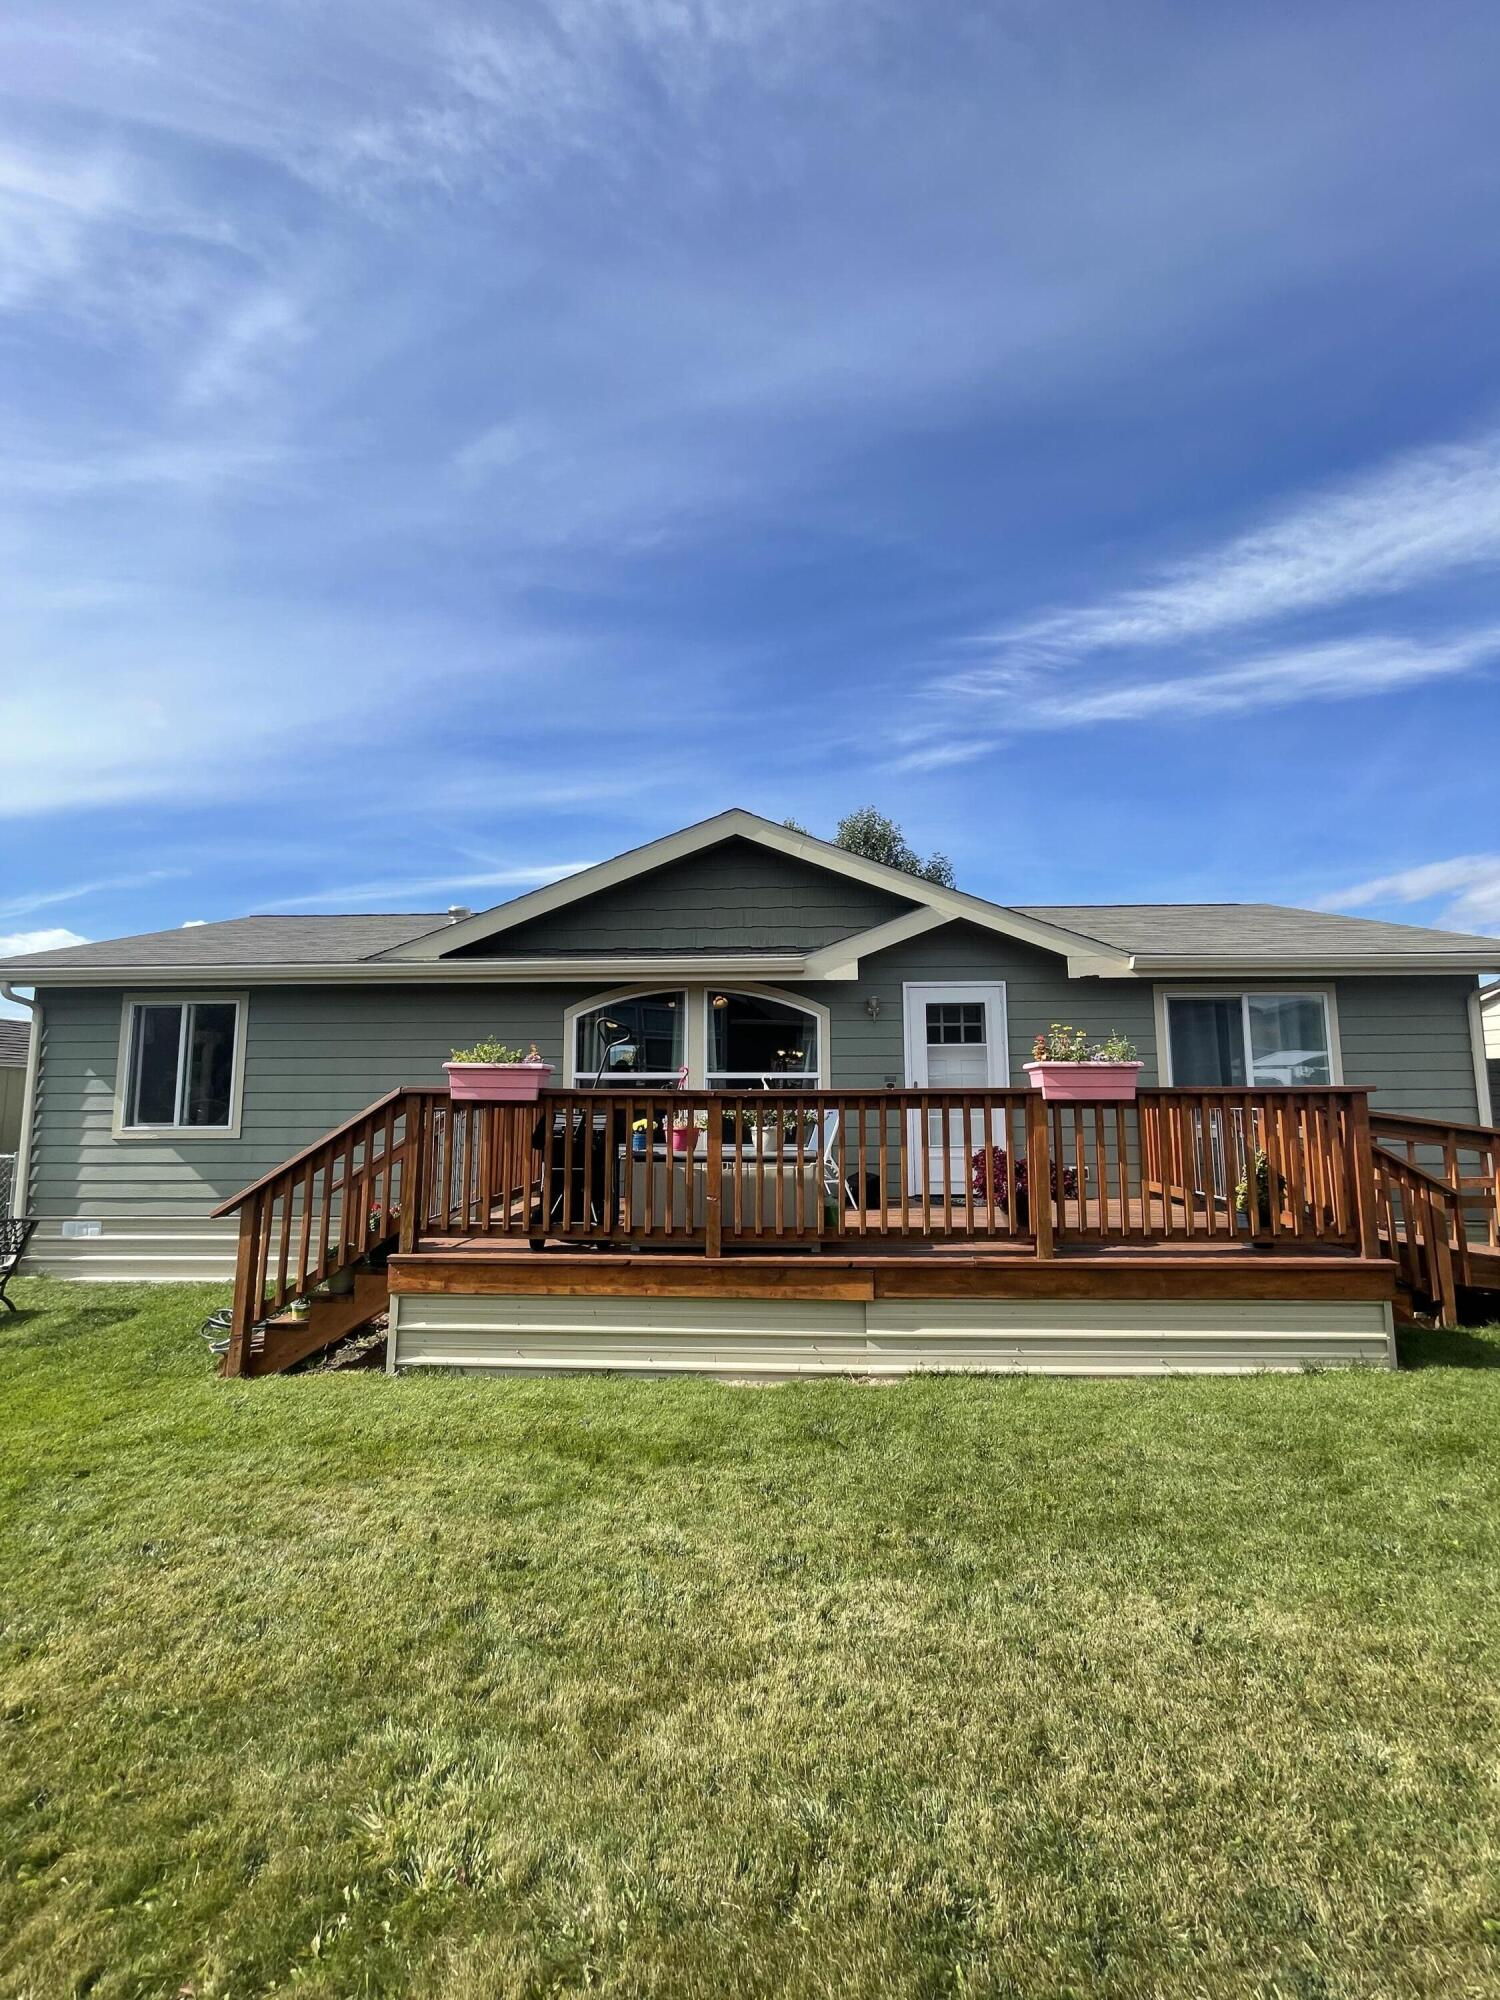 Come see this updated home in the Hellgate School District. Nicely remodeled 3 bedroom, 2 bath home is ready to move in. All new flooring and doors. Kitchen island. Newer stainless steel appliances. Master bedroom on one end and the other 2 bedrooms are on the opposite end. New water heater in 2018. Front deck ready for enjoying the evenings and weekends. Covered back deck leads out to the fenced yard, perfect for pets. Exterior features well maintained landscaping and shed. Carport protects your vehicles against the elements. Home is on a leased lot. Buyers will need to be approved by the park prior to closing. Call Deb Kees at 406-303-1308, or your real estate professional.